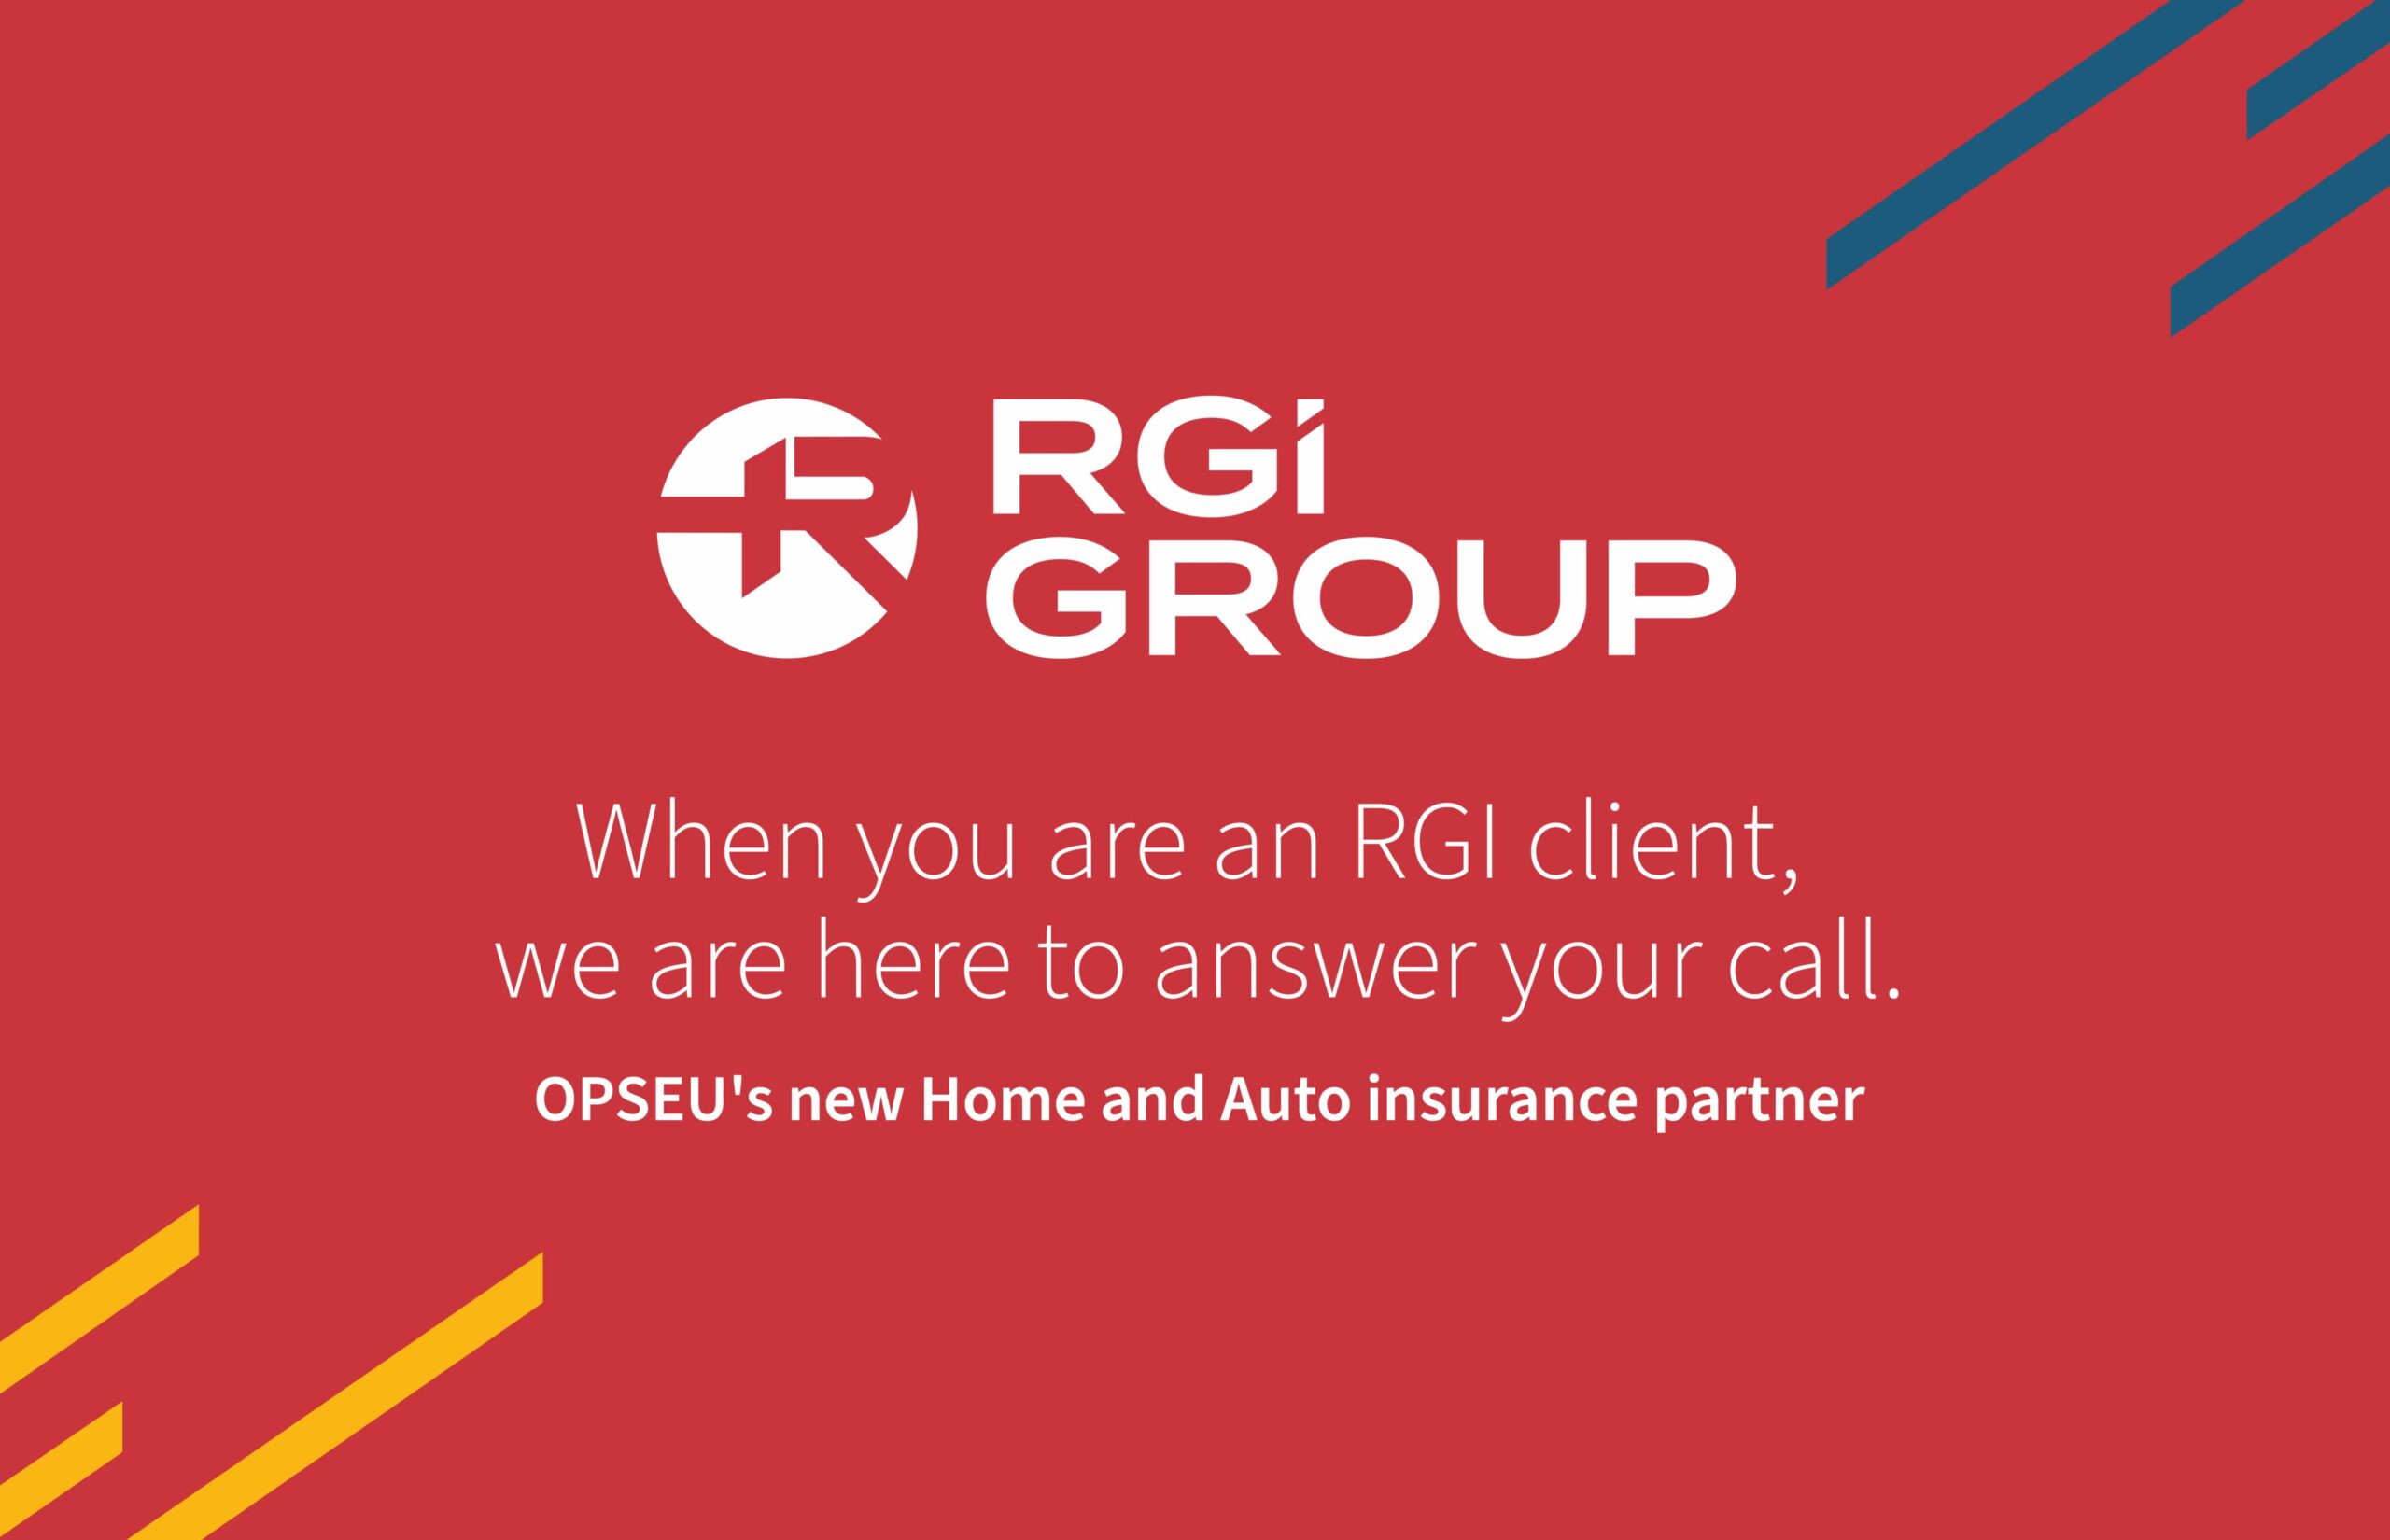 RGI Group. When you are an RGI client, we are here to answer your call. OPSEU's new Home and Auto insurance partner.